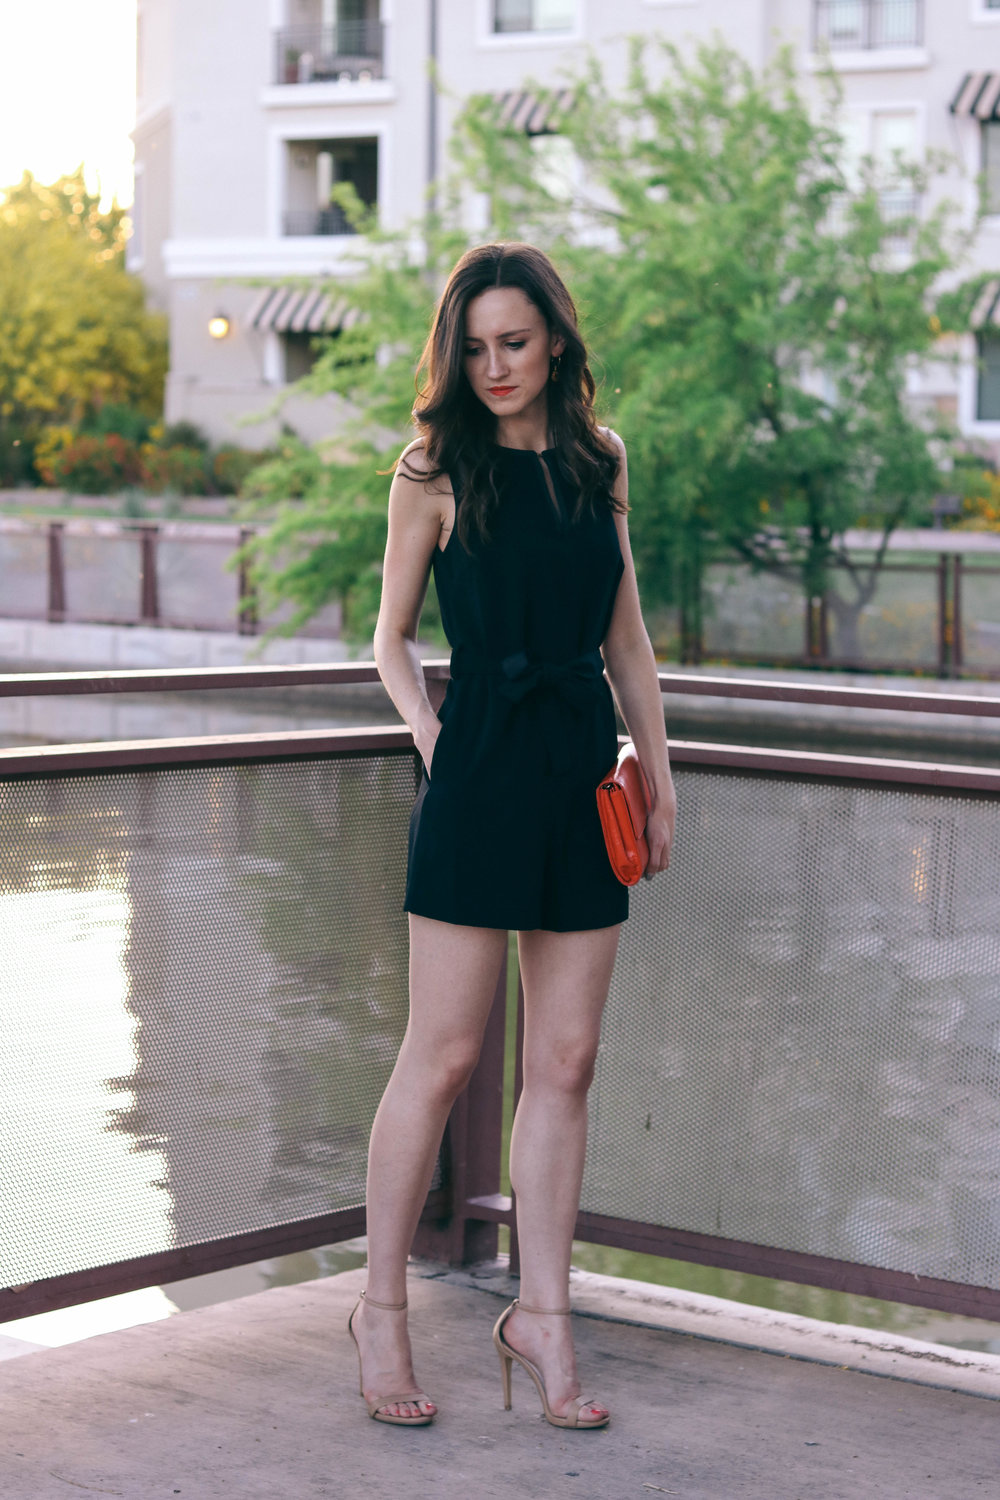 bb-black-romper-008 (1 of 1).jpg